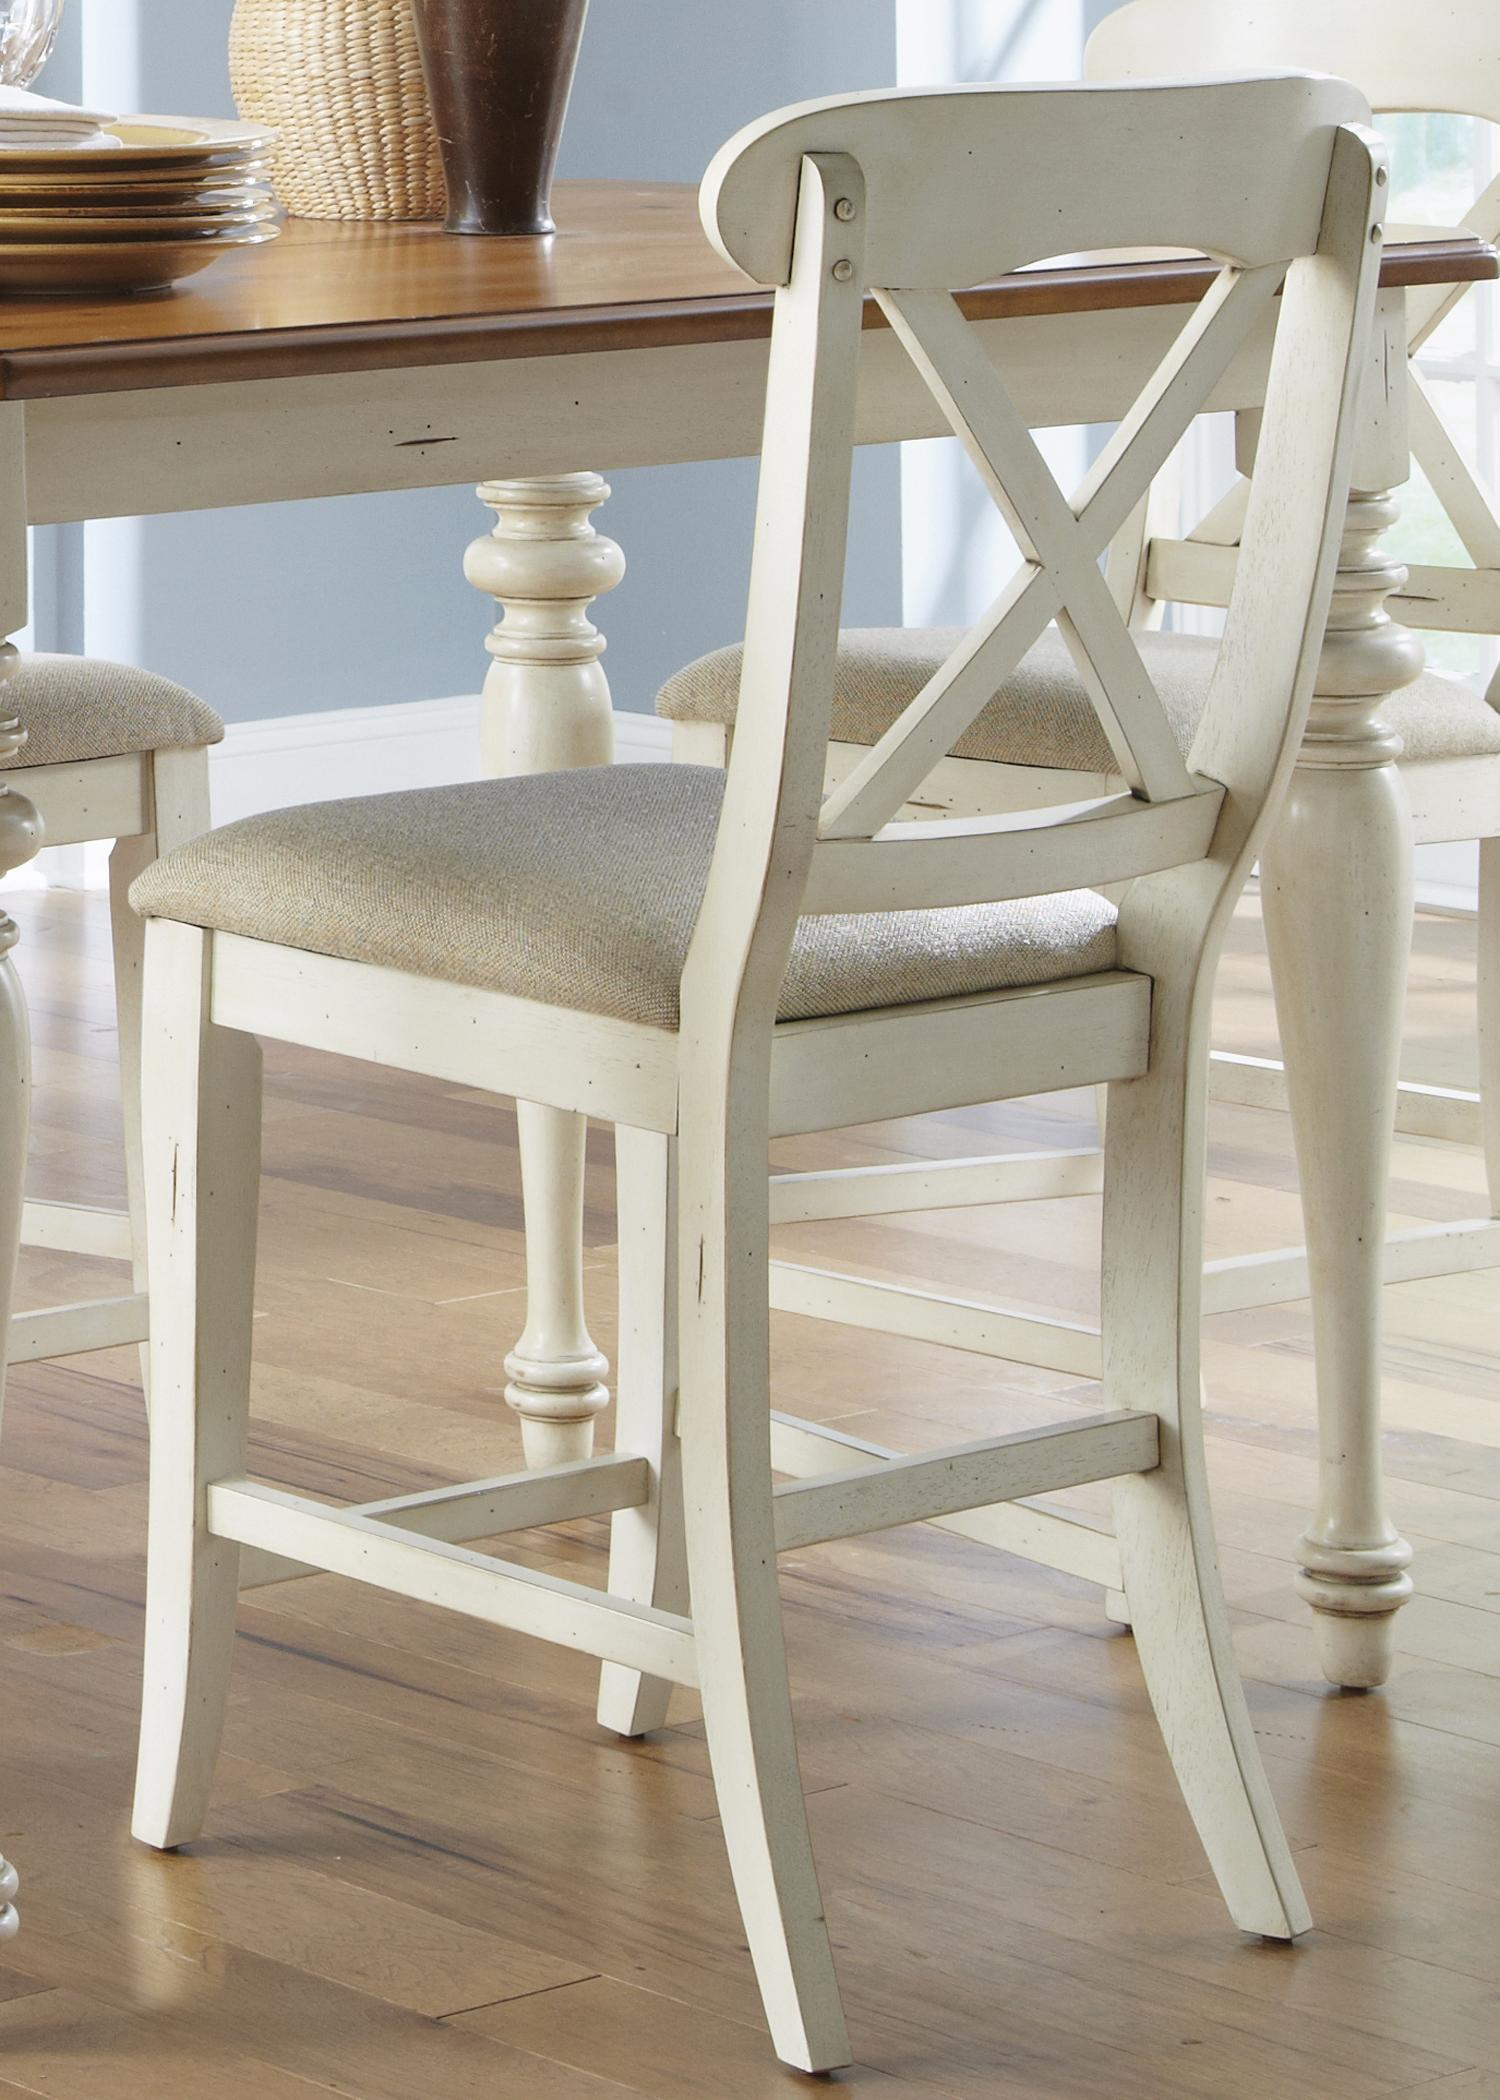 chair stools height fishing with wheels liberty furniture ocean isle x back counter dining stool